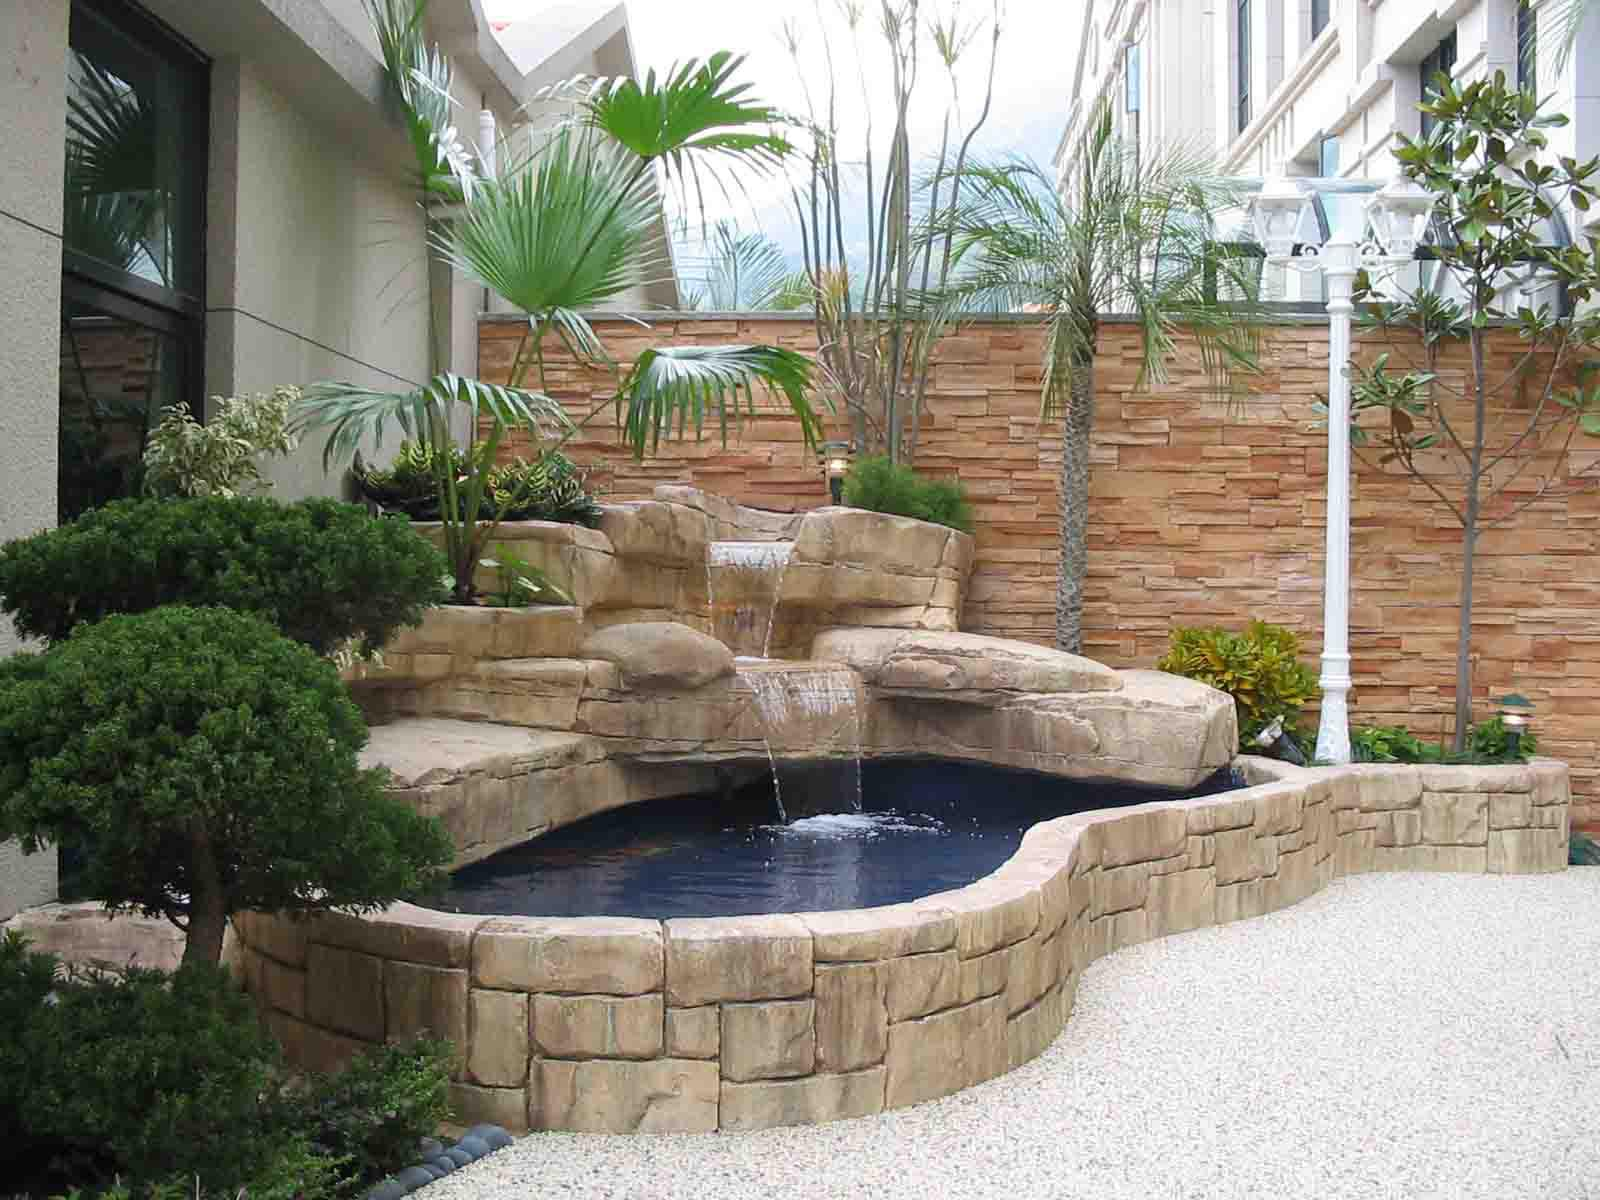 Fish pond garden design backyard design ideas for Koi pond garden